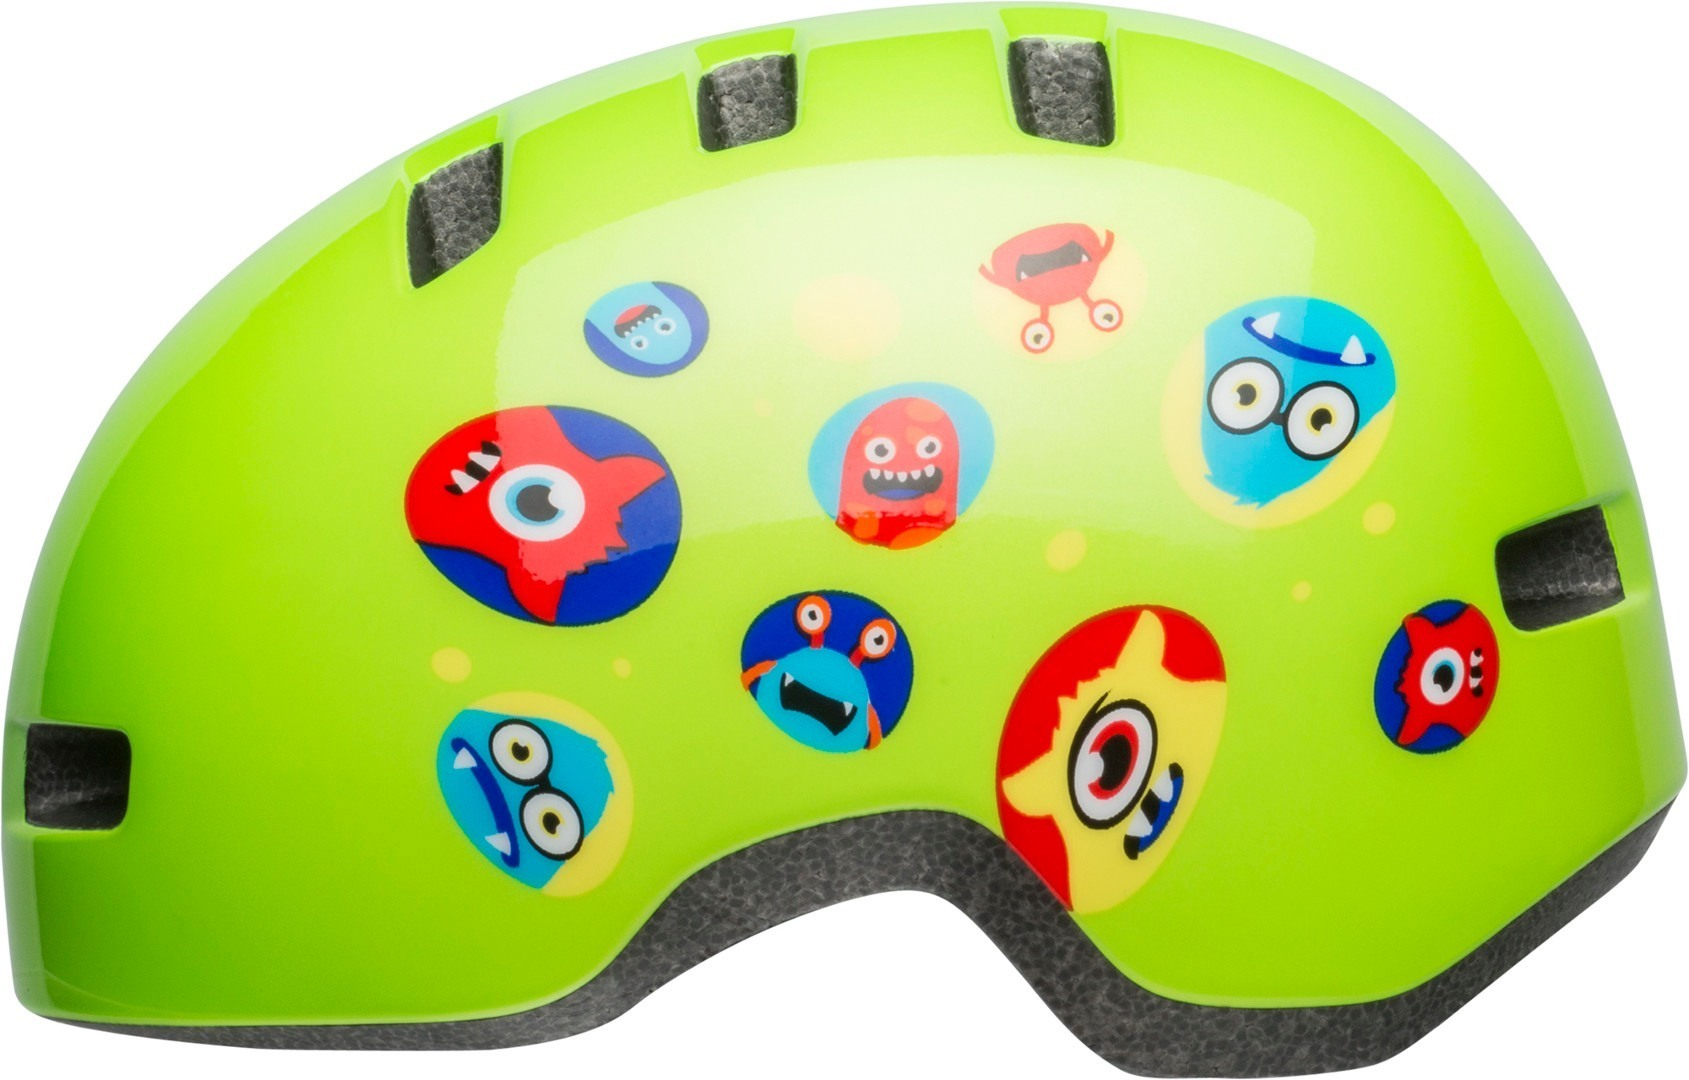 detailed images detailing online retailer Bell Lil Ripper Green Monster Toddler Bicycle Helmet - buy cheap ...